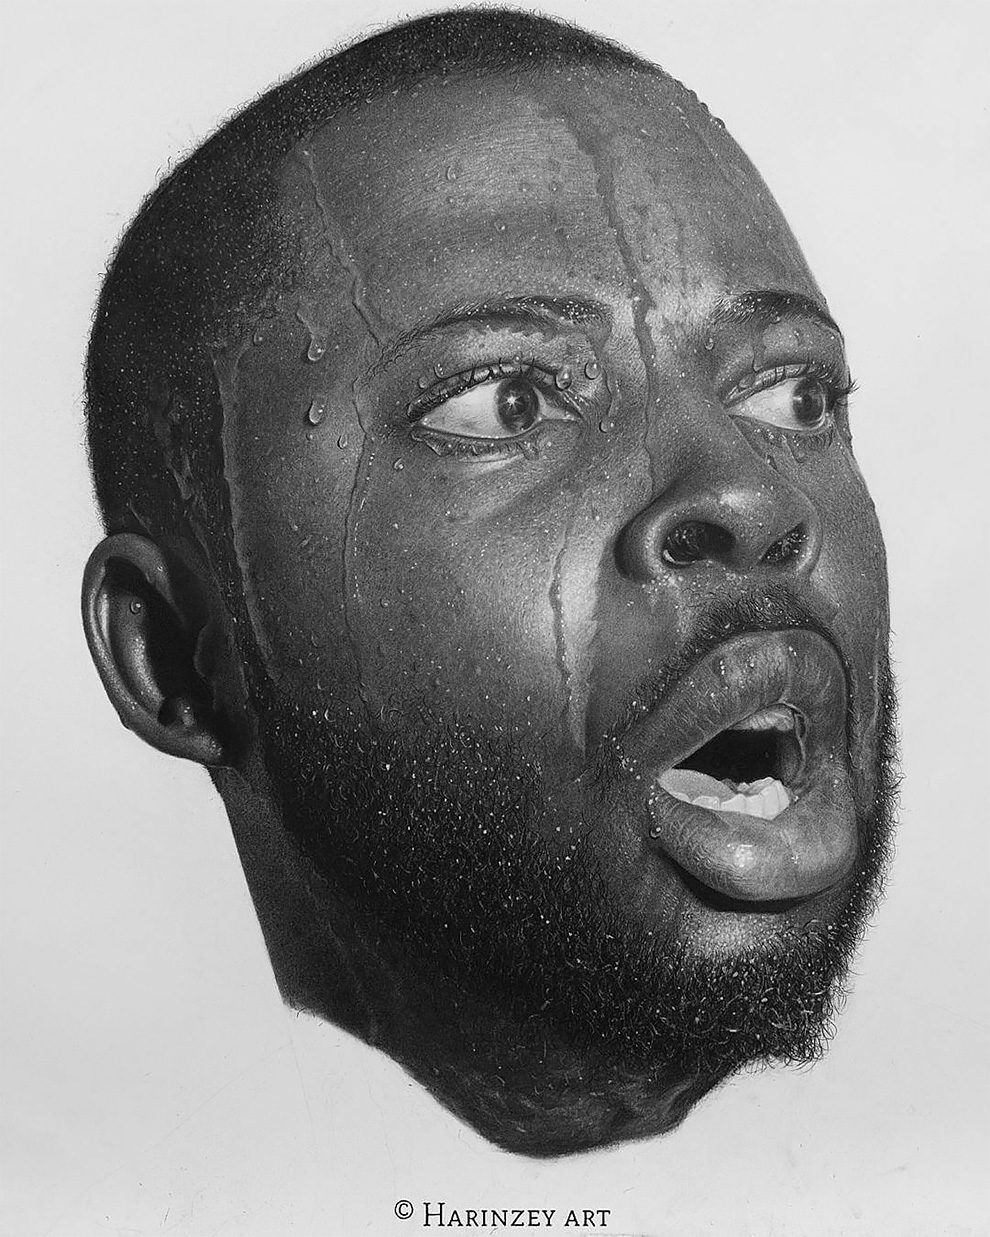 Expressive large scale pencil drawings that are amazingly photo realistic